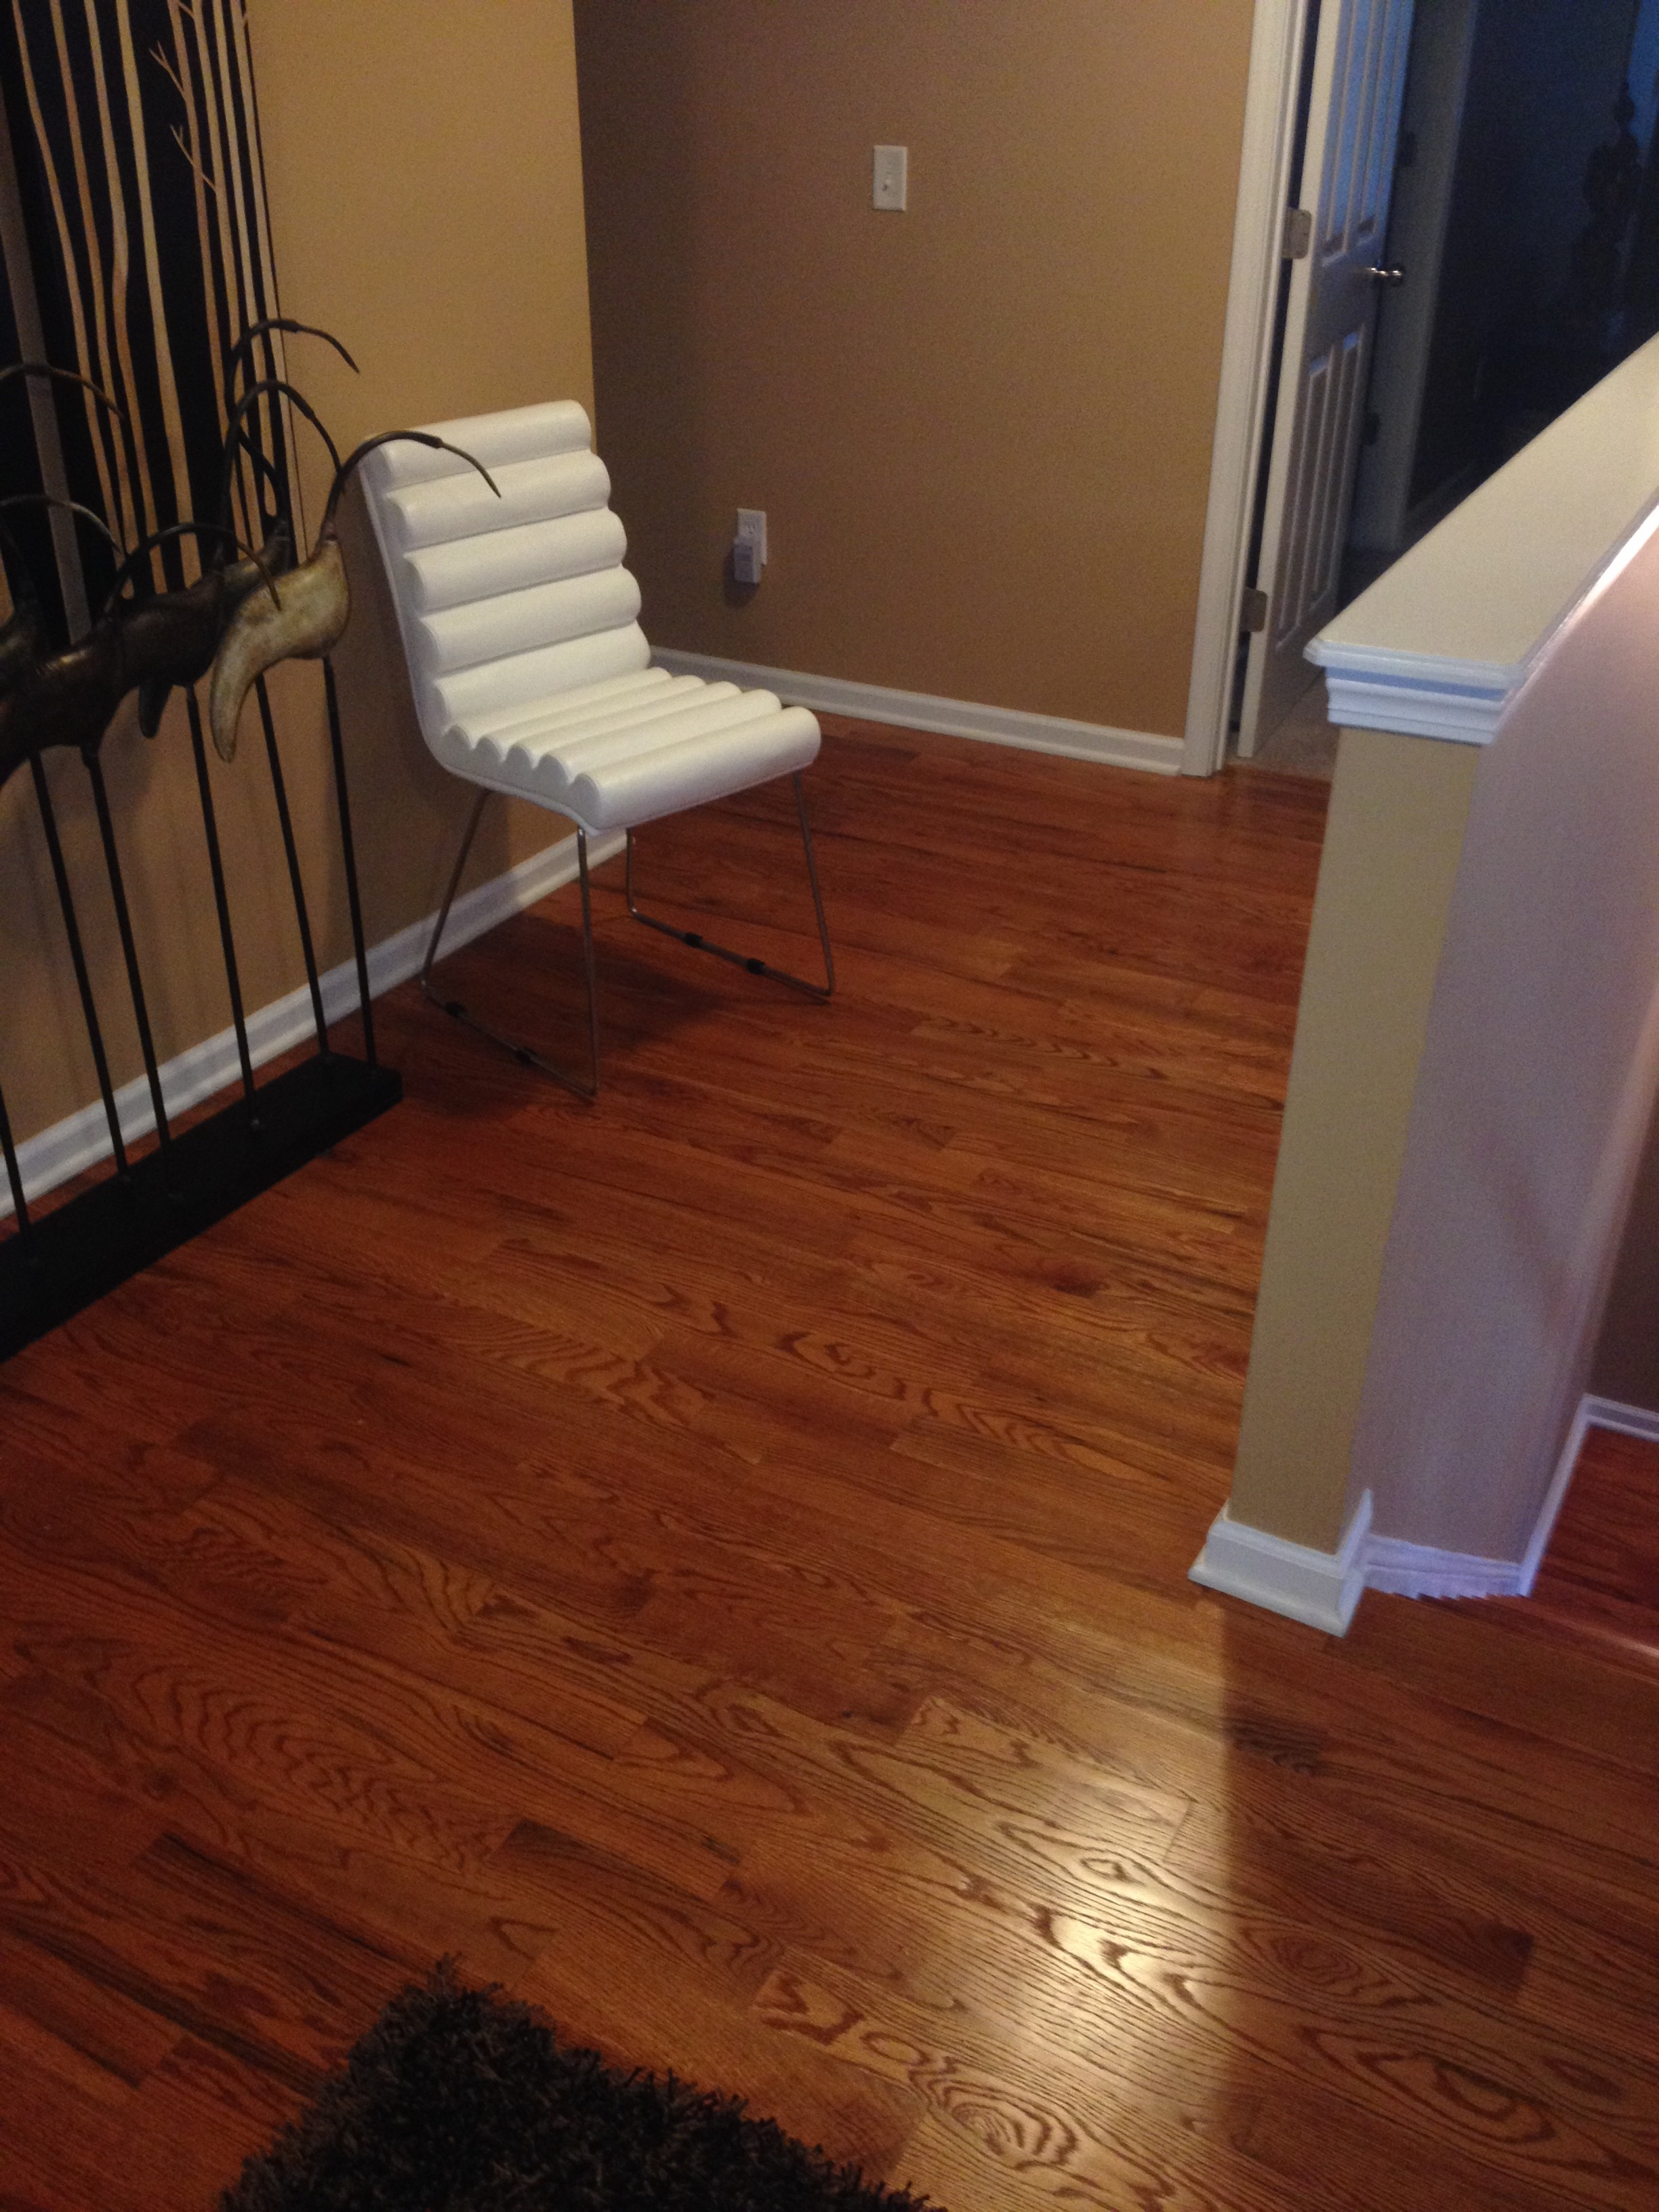 How to Check the Installation of Hardwood Floors